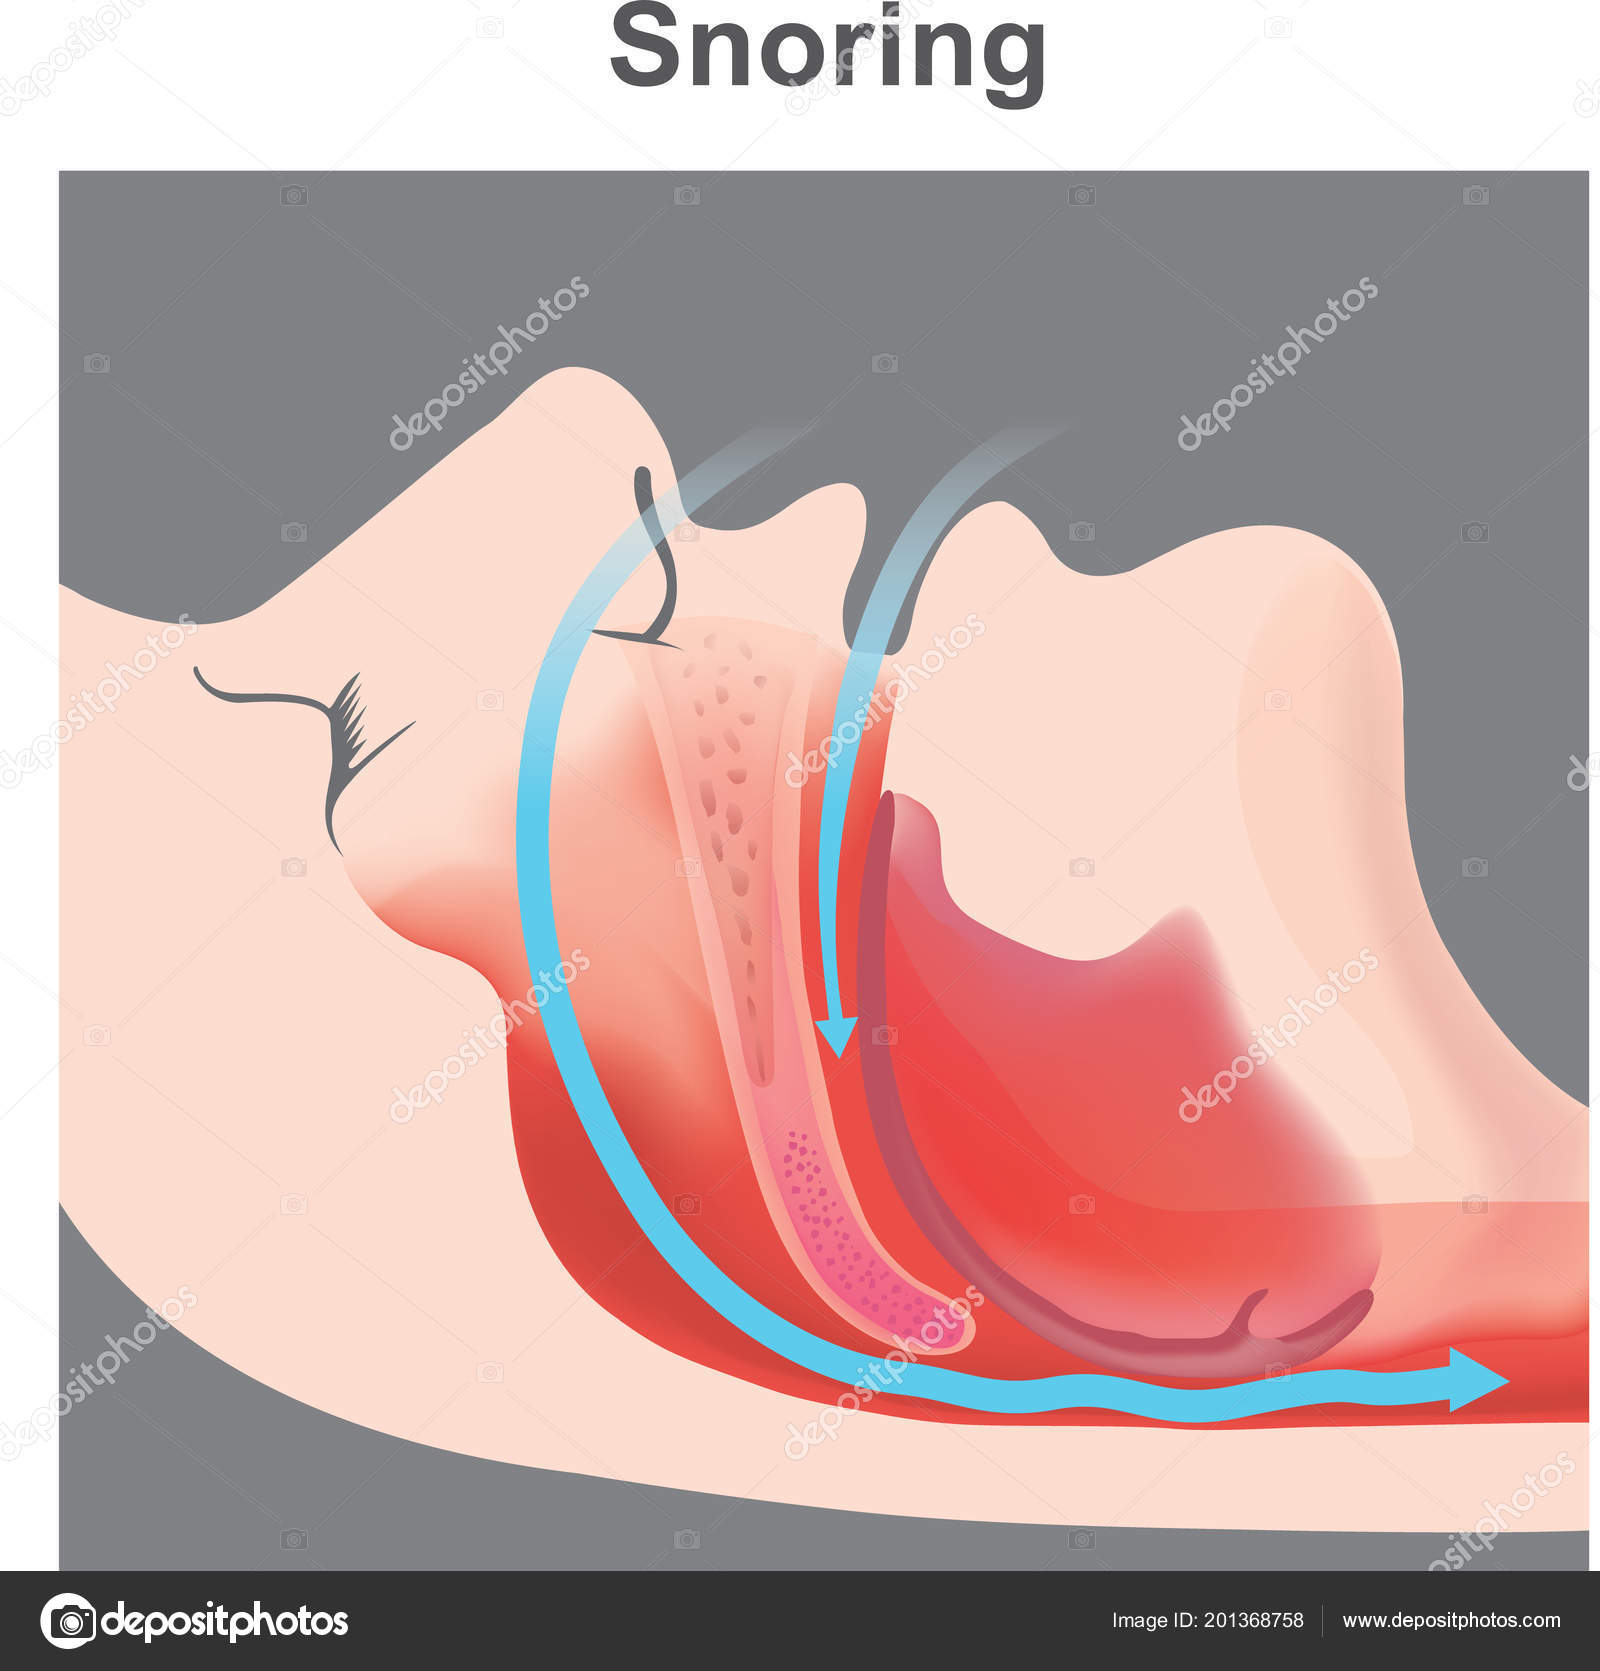 Snoring Vibration Respiratory Structures Resulting Sound Due ...